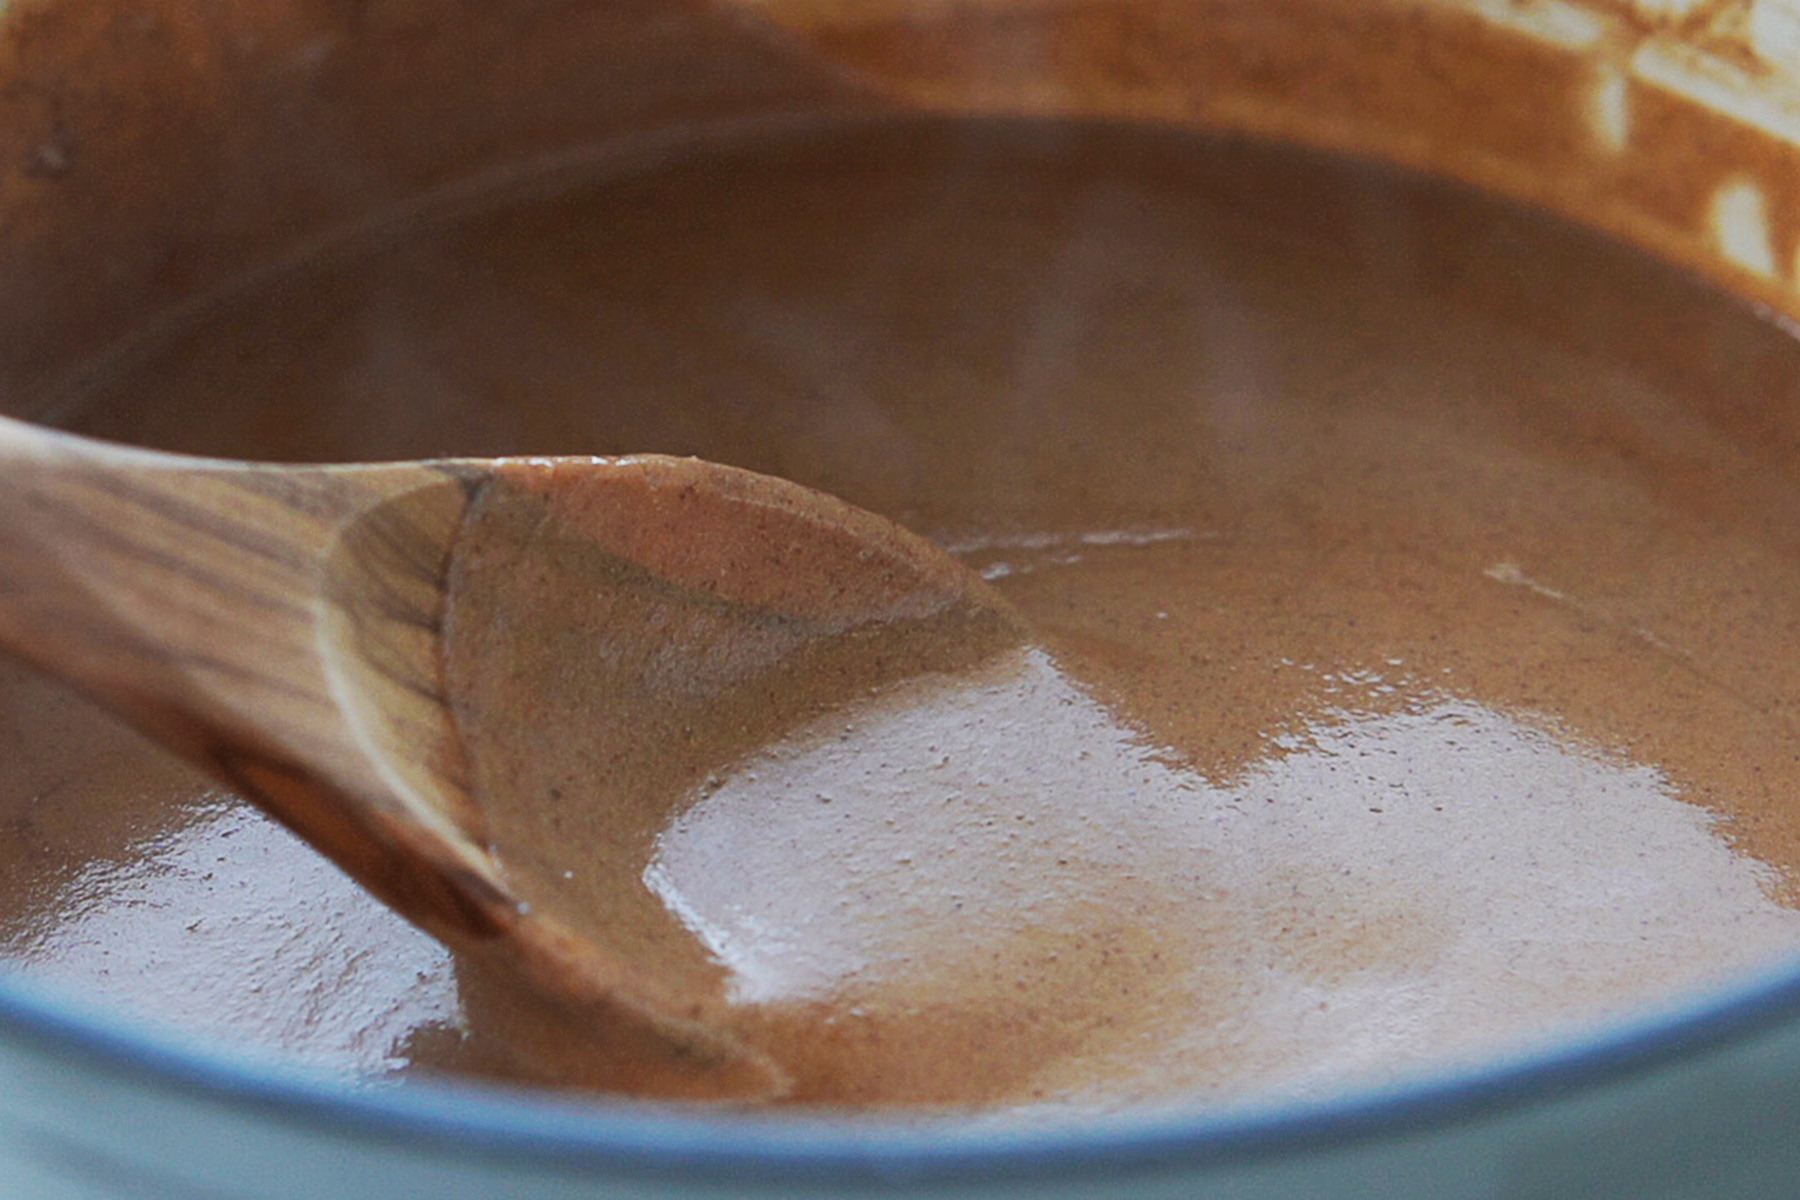 A saucepan with champurrado and a wood spoon.